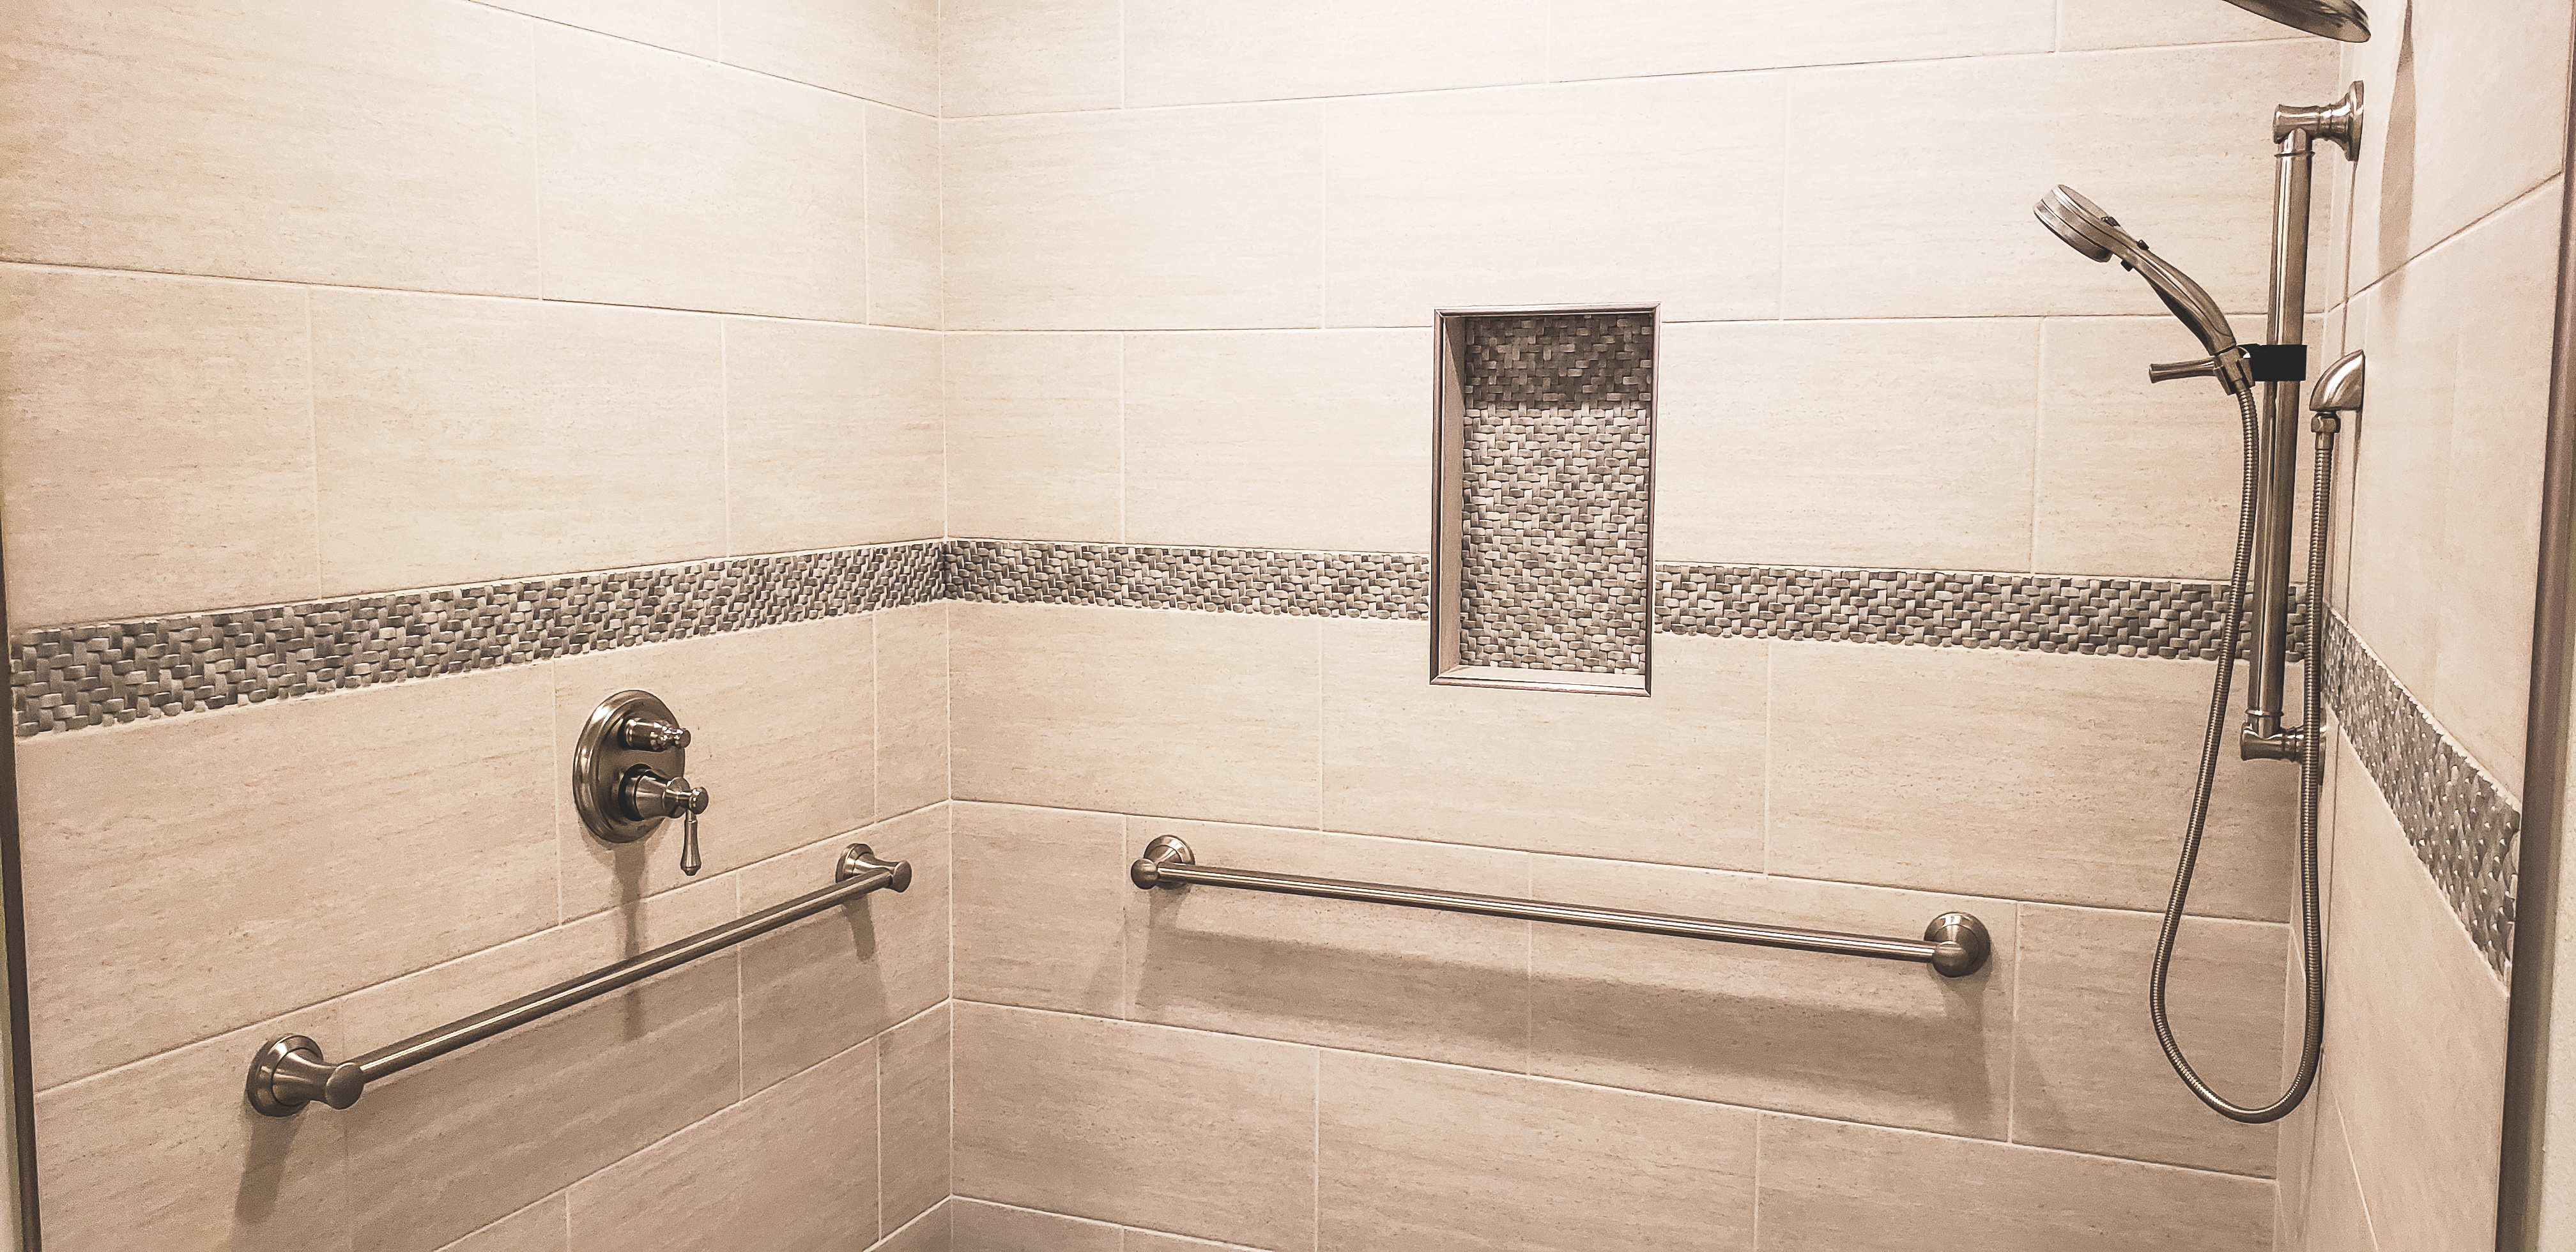 Bathroom Remodel Roll-in Shower and Safety Bars